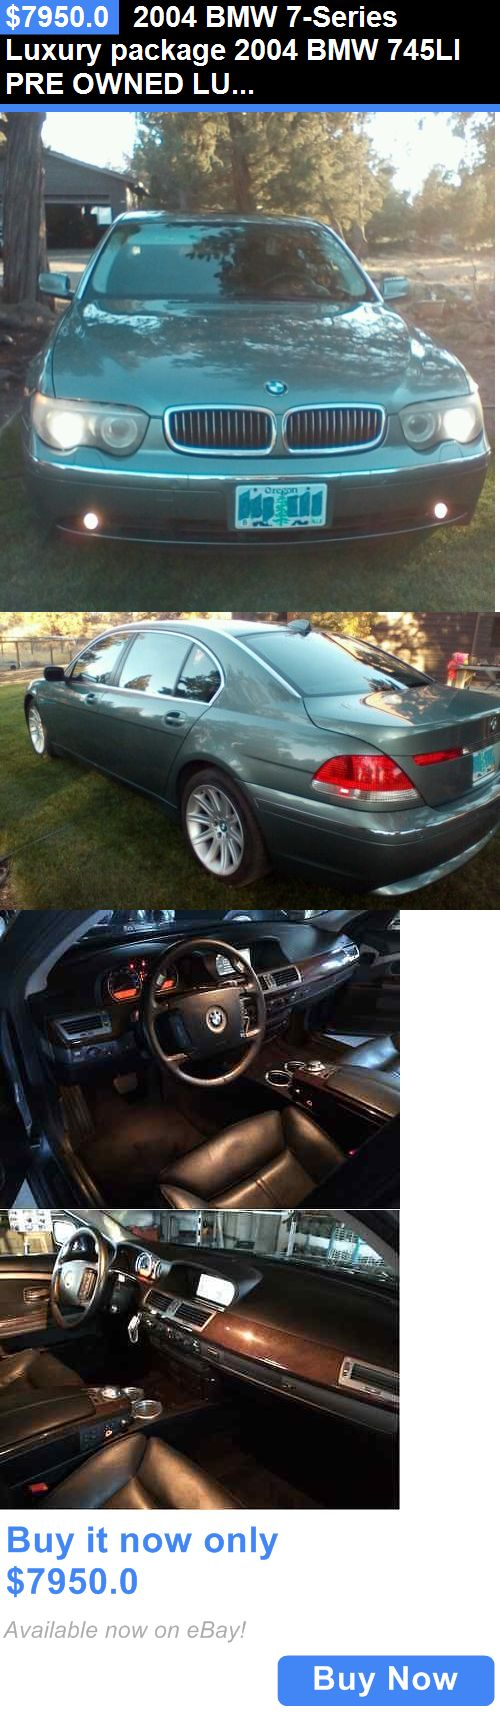 Luxury Cars: 2004 Bmw 7-Series Luxury Package 2004 Bmw 745Li Pre Owned Luxury Sedan, Nice Car, Service Contract Included BUY IT NOW ONLY: $7950.0